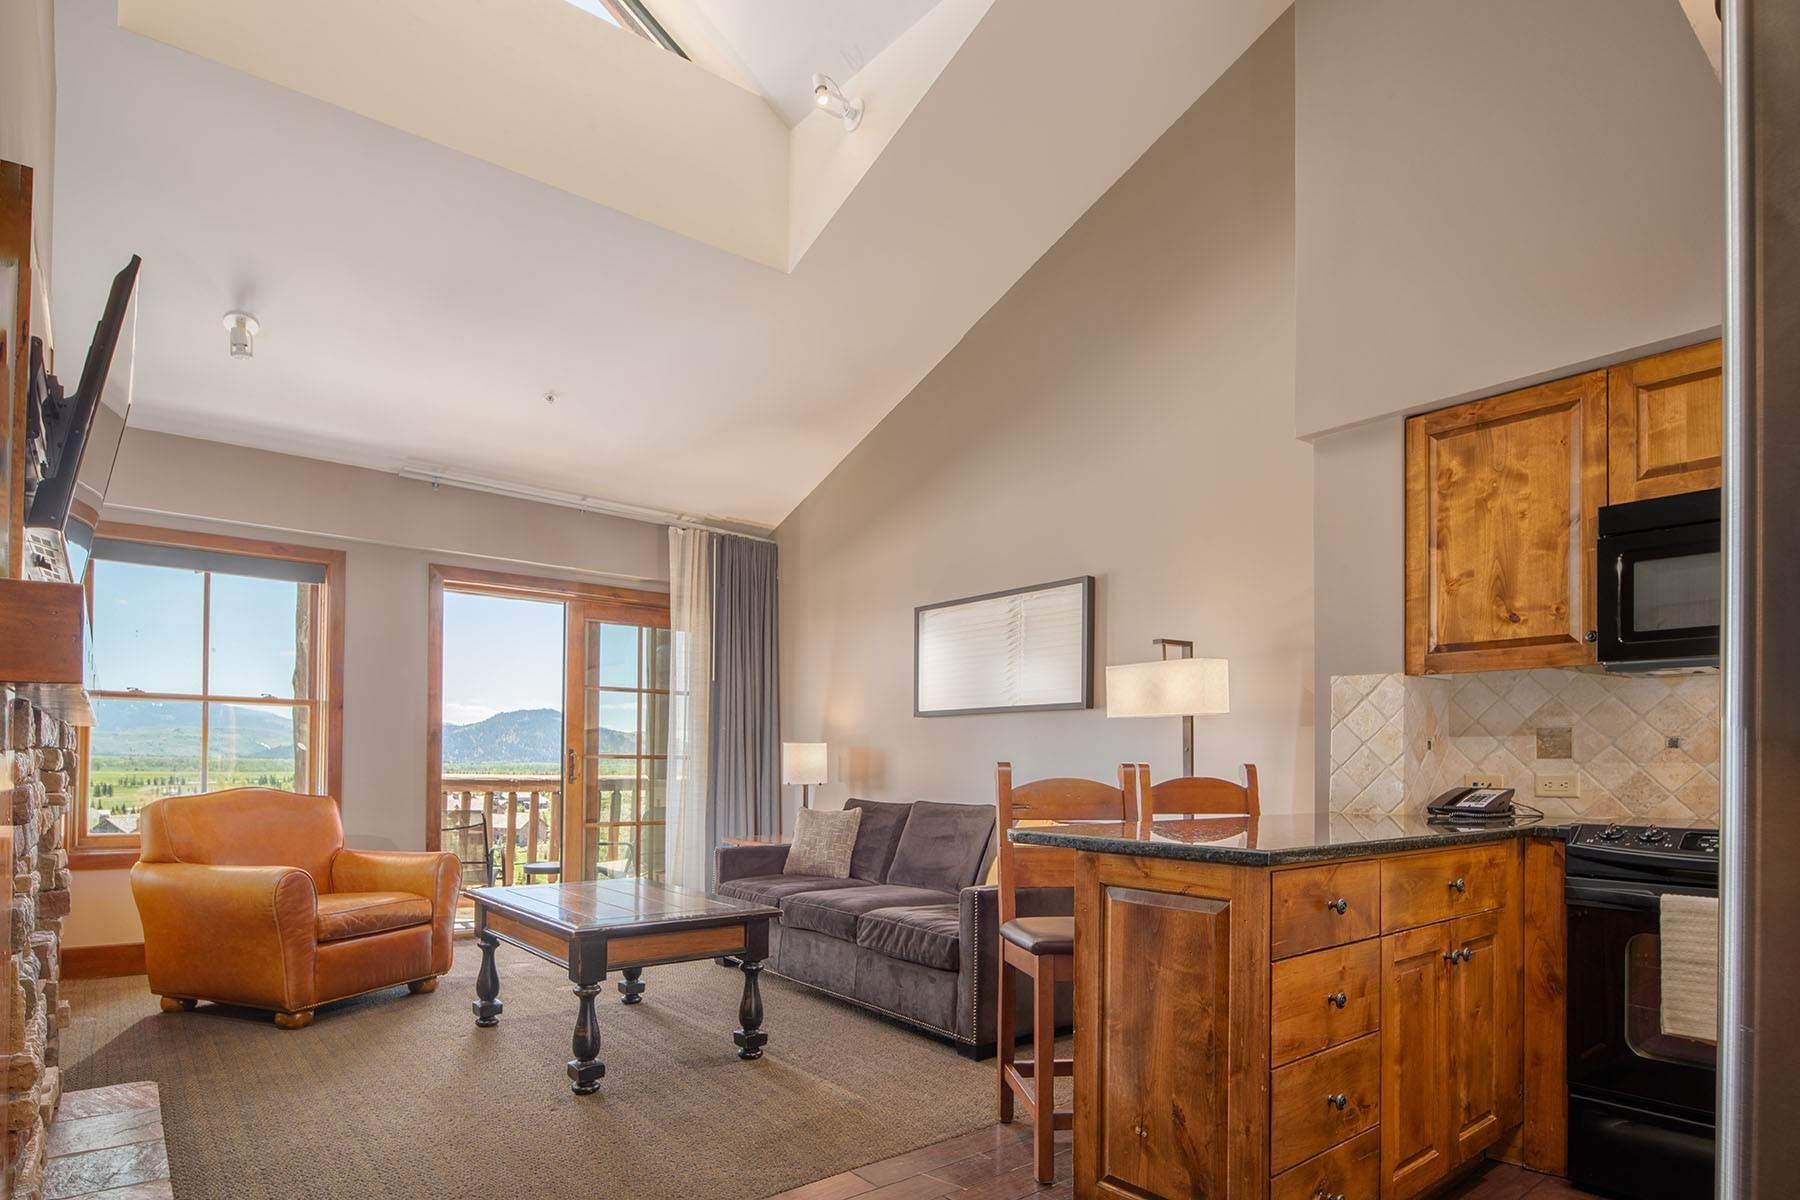 Condominiums for Sale at Slopeside Penthouse 3385 W Village Drive, #421 Teton Village, Wyoming 83025 United States